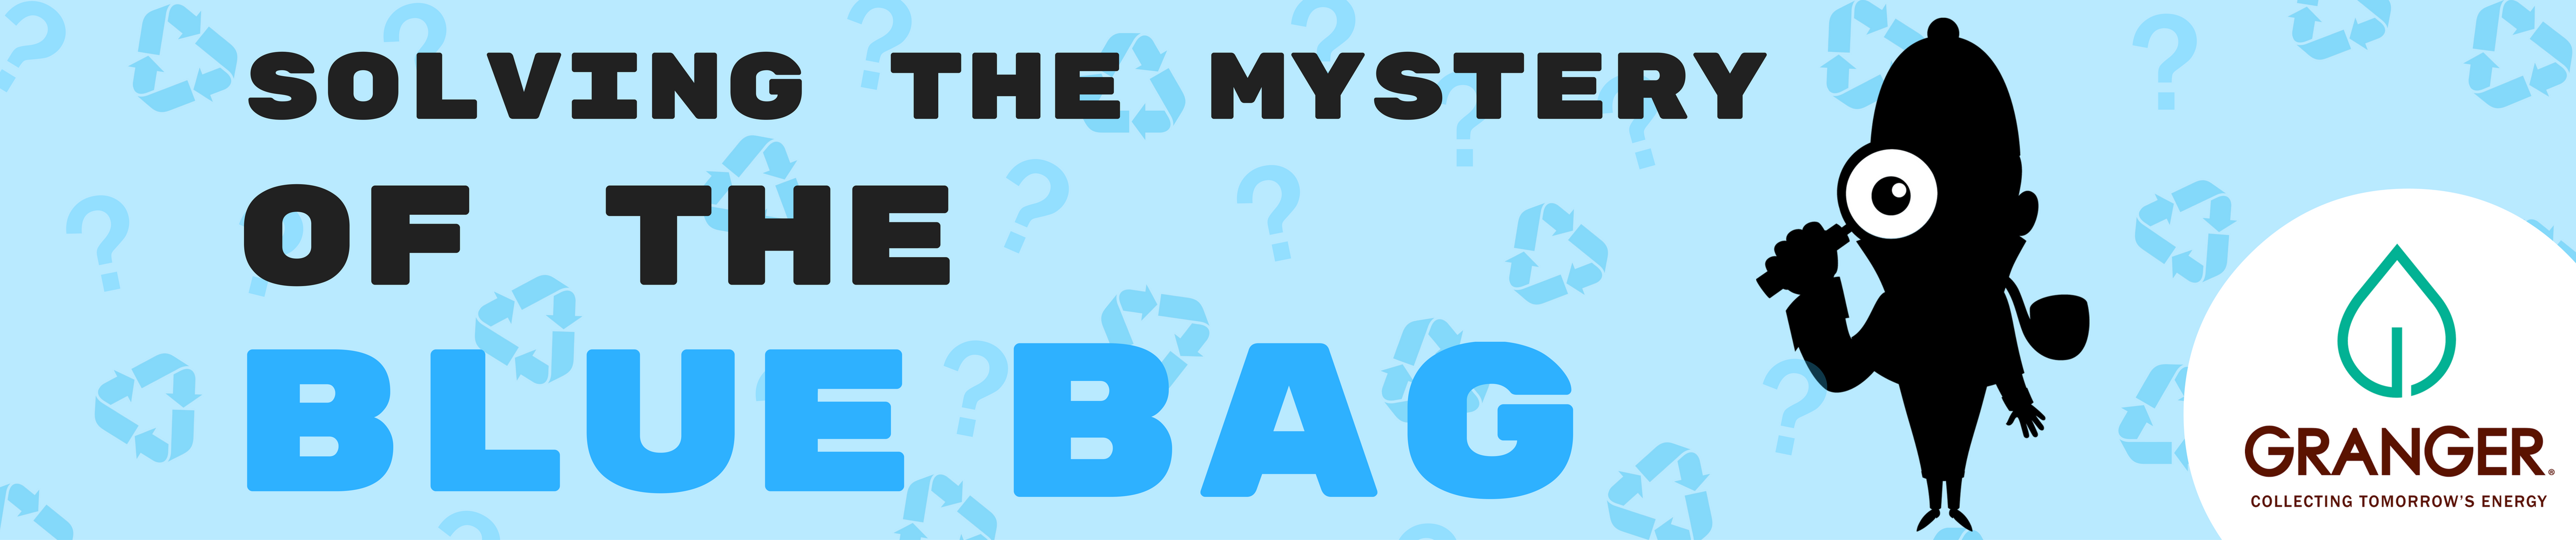 2016-09-29-blog-post_-solving-the-mystery-of-the-blue-bag